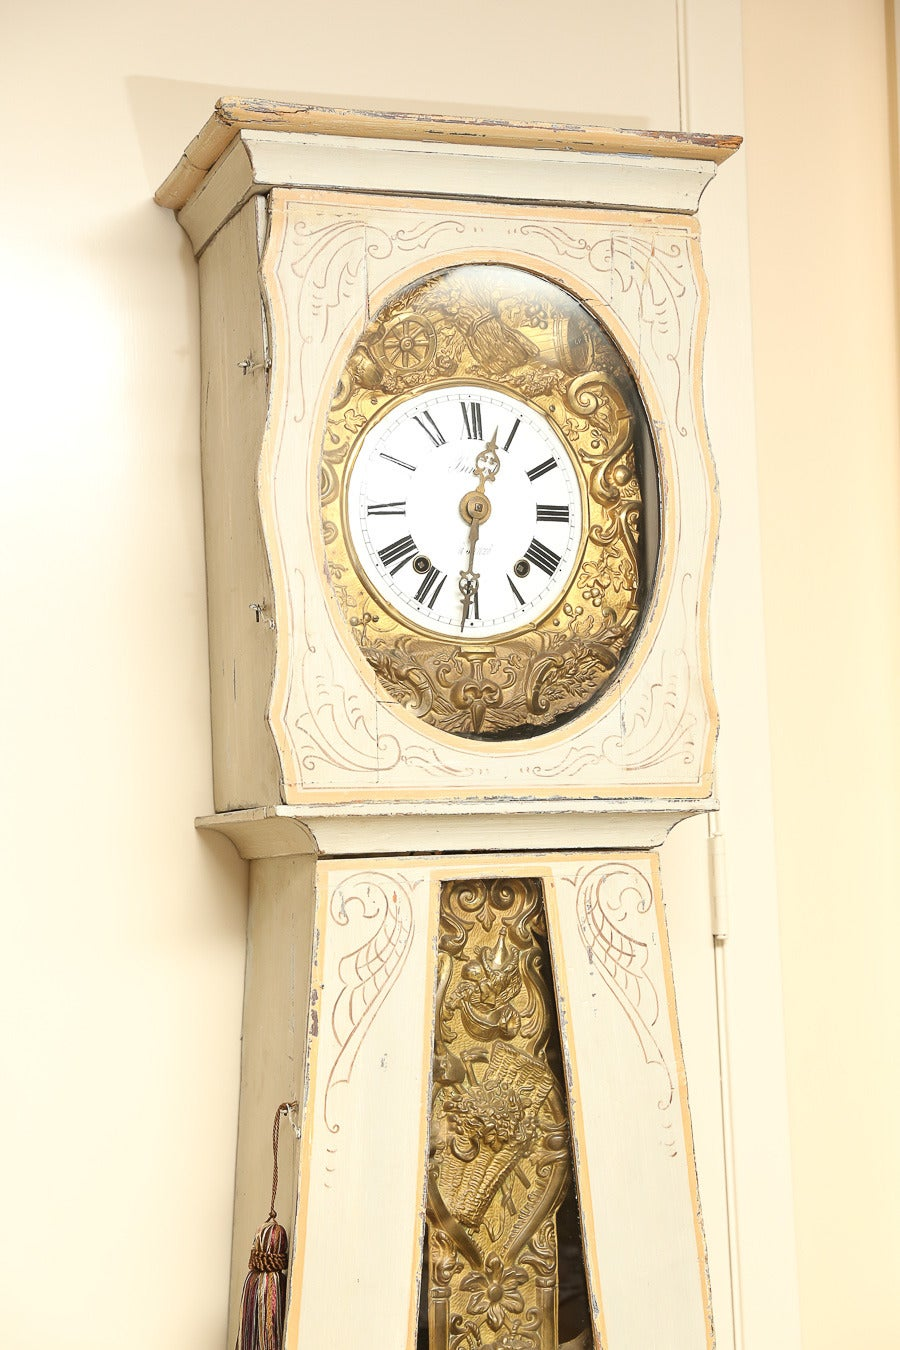 Whitewashed French clock painted with ribbons and country scene in blue.  All parts are original and is in good working condition.